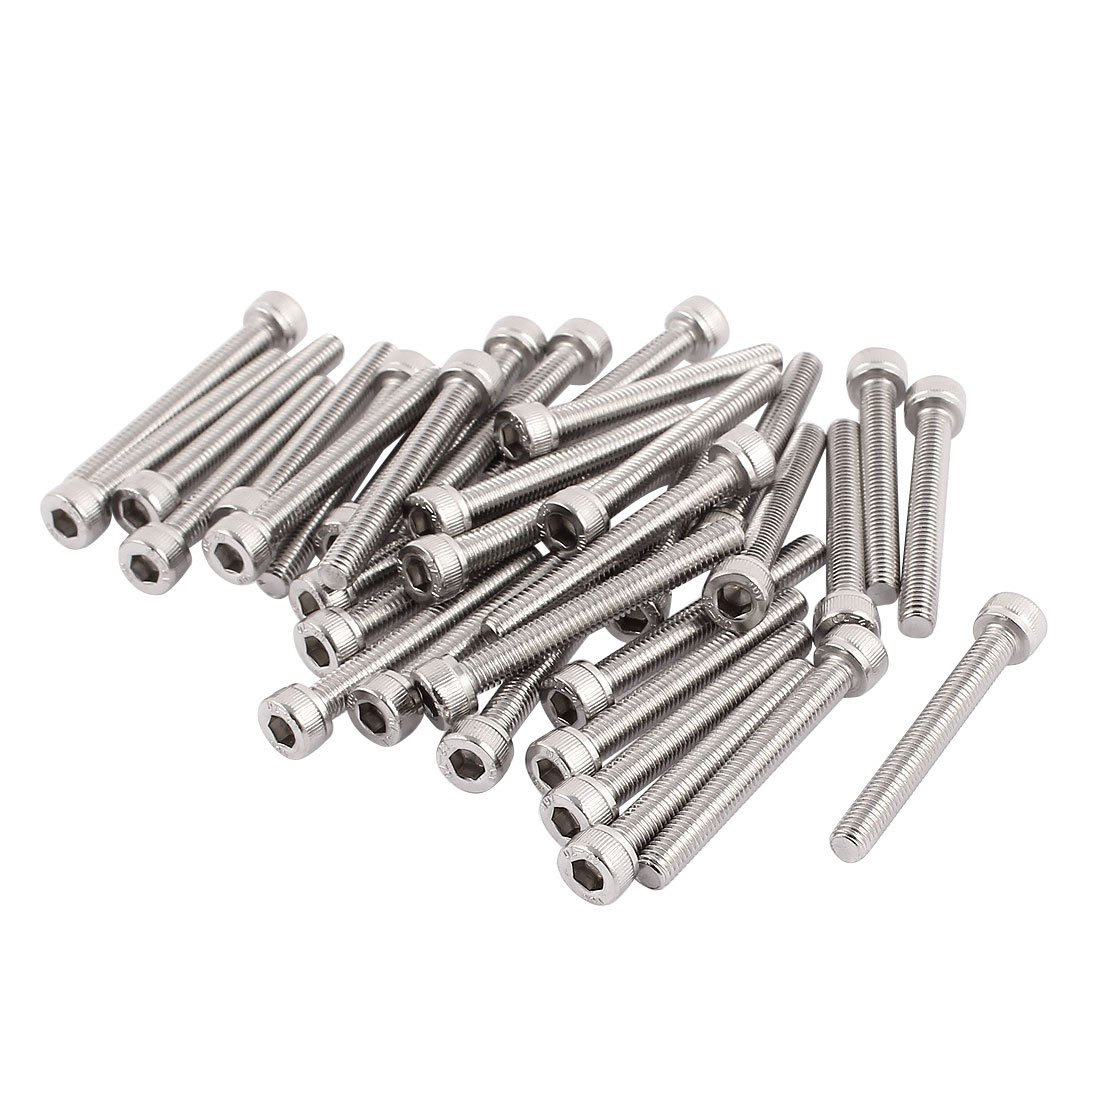 uxcell M5x40mm Thread 304 Stainless Steel Hex Socket Head Cap Screw Bolt DIN912 35pcs